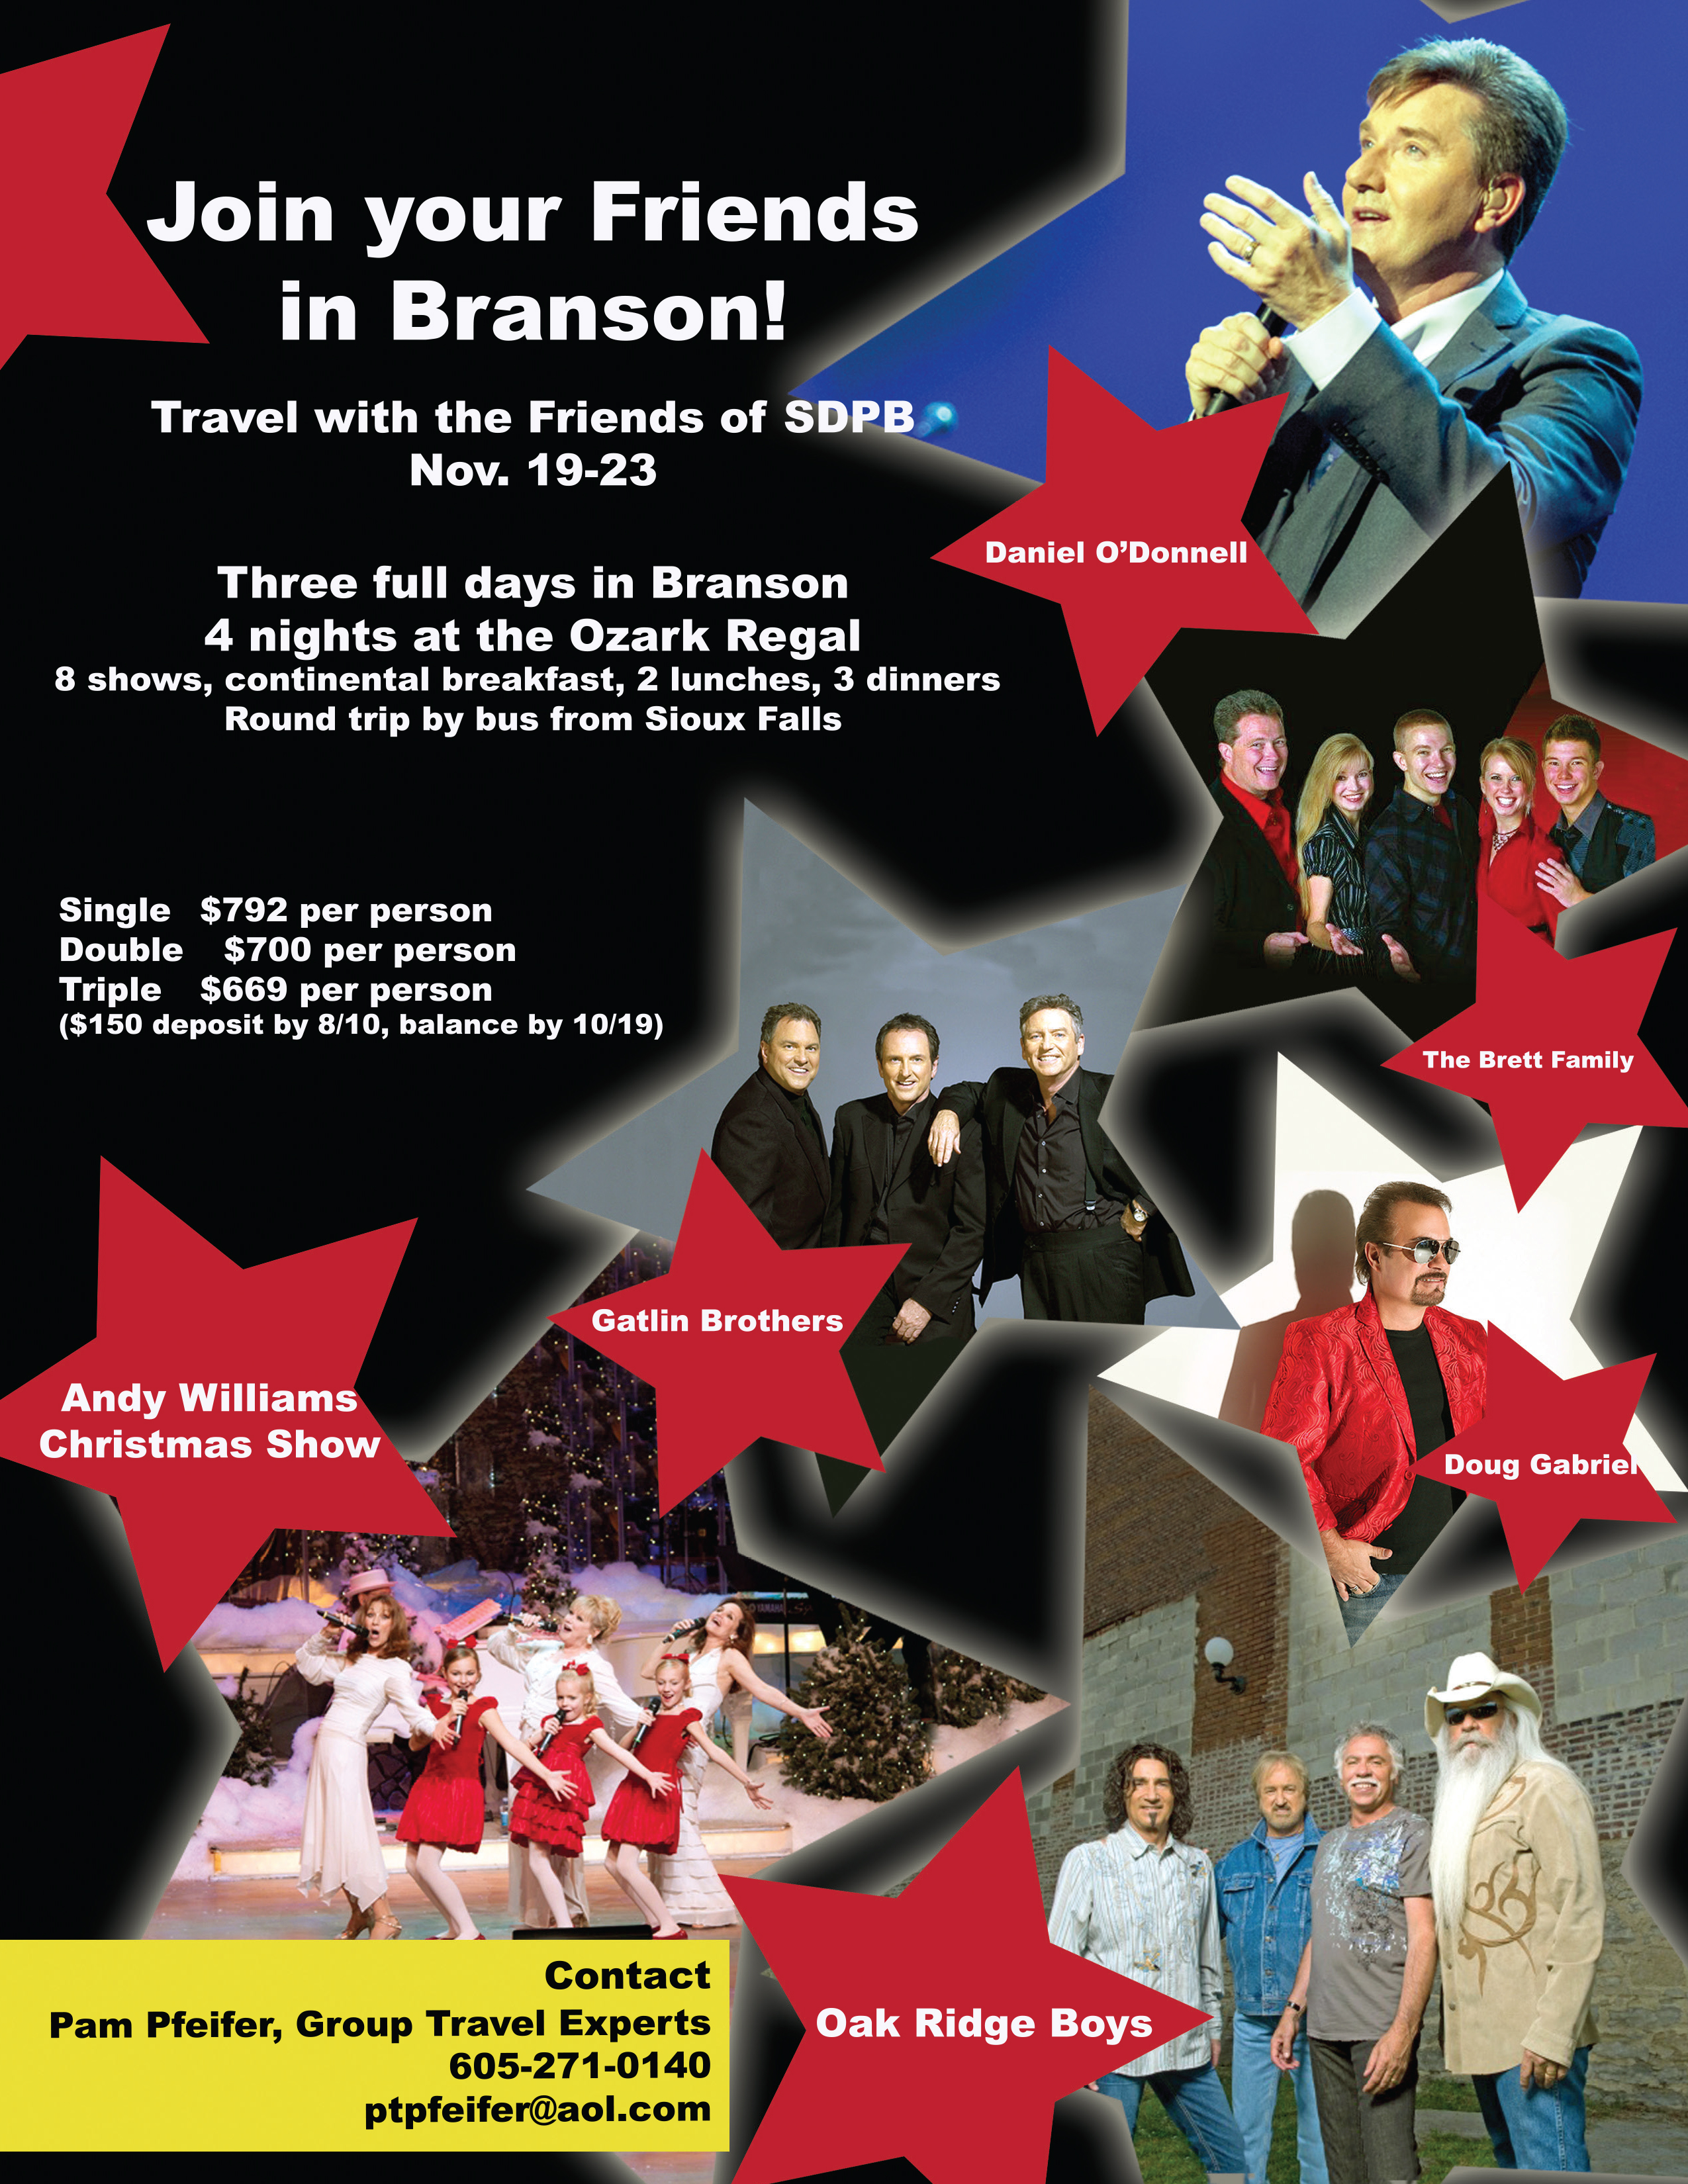 Travel with SDPB to Branson promo image